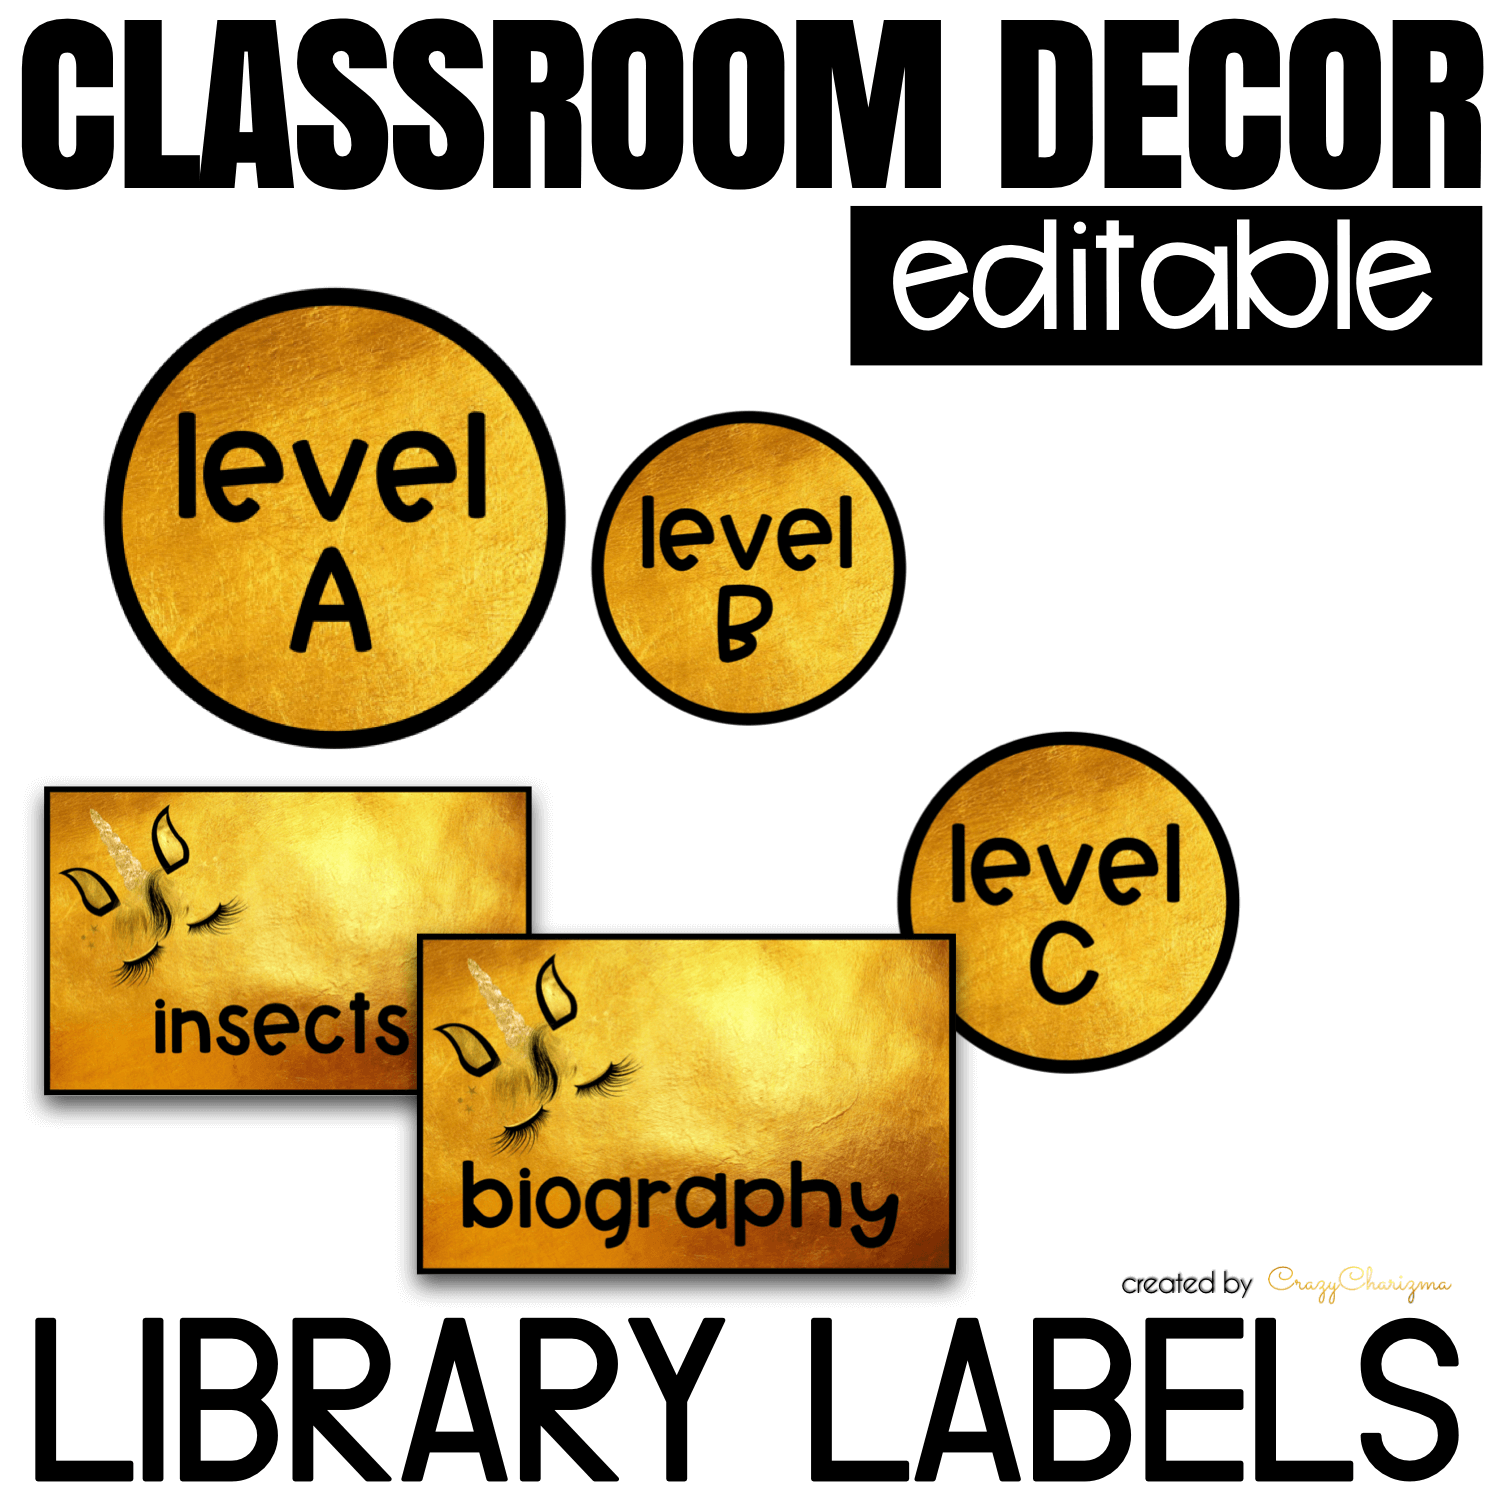 Looking for bright and clear EDITABLE library labels? Spice your classroom with this visually appealing classroom decor!